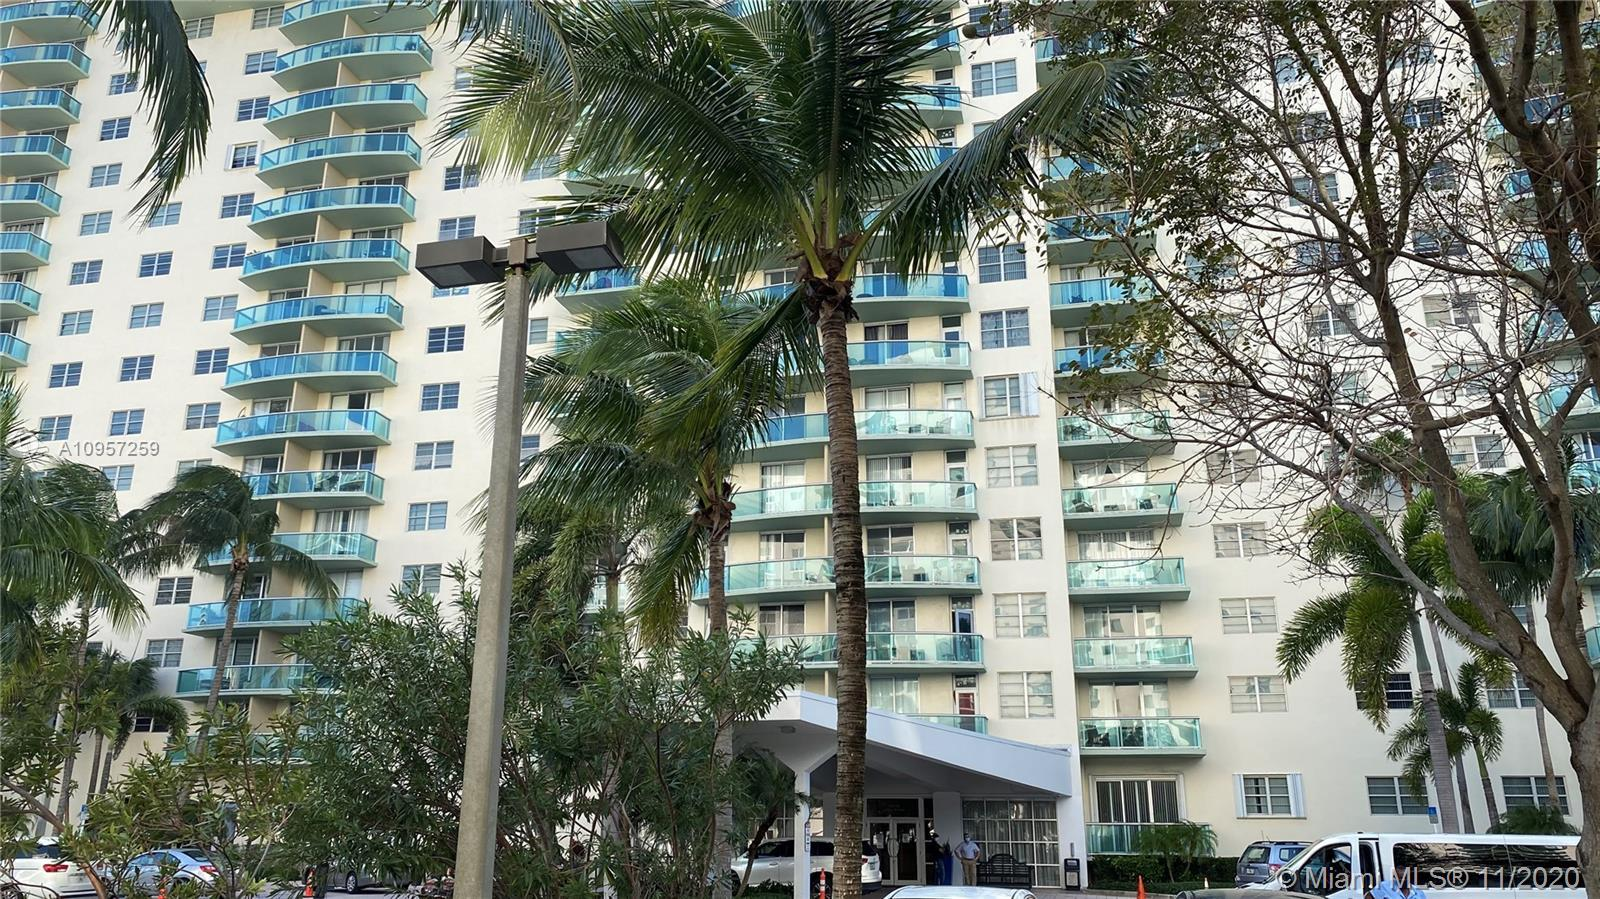 LIVE IN THE HEART SUNNY ISLES BEACH ,SURROUNDED BEACHES!!!!!BANKS,SUPERMARKET   THIS UNIT 1 BEDROOM